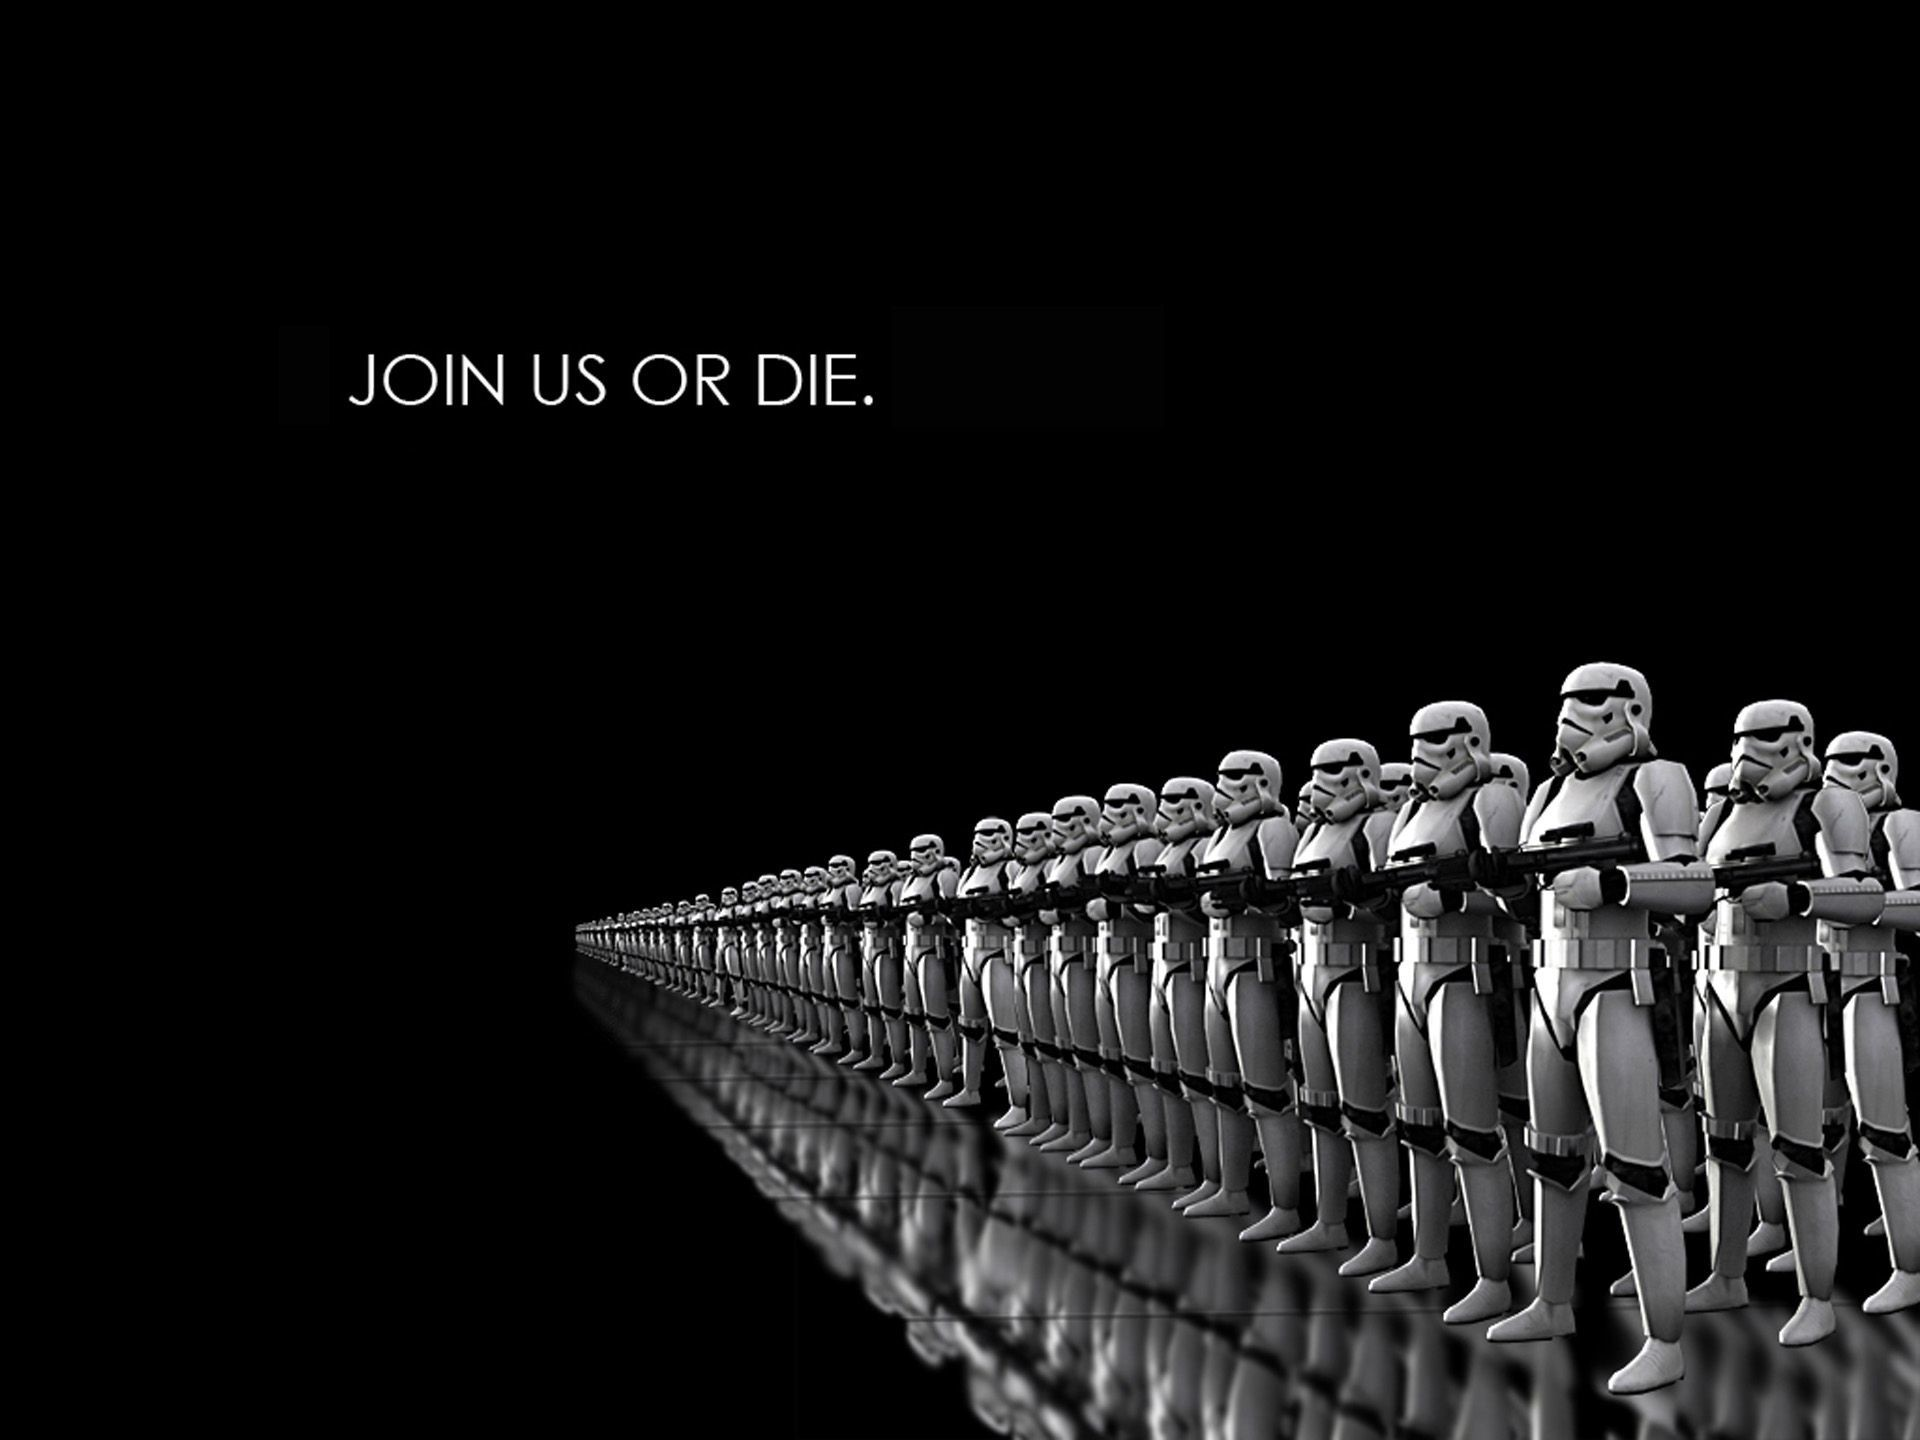 1920x1440 Star wars die dark side clone trooper wallpaper